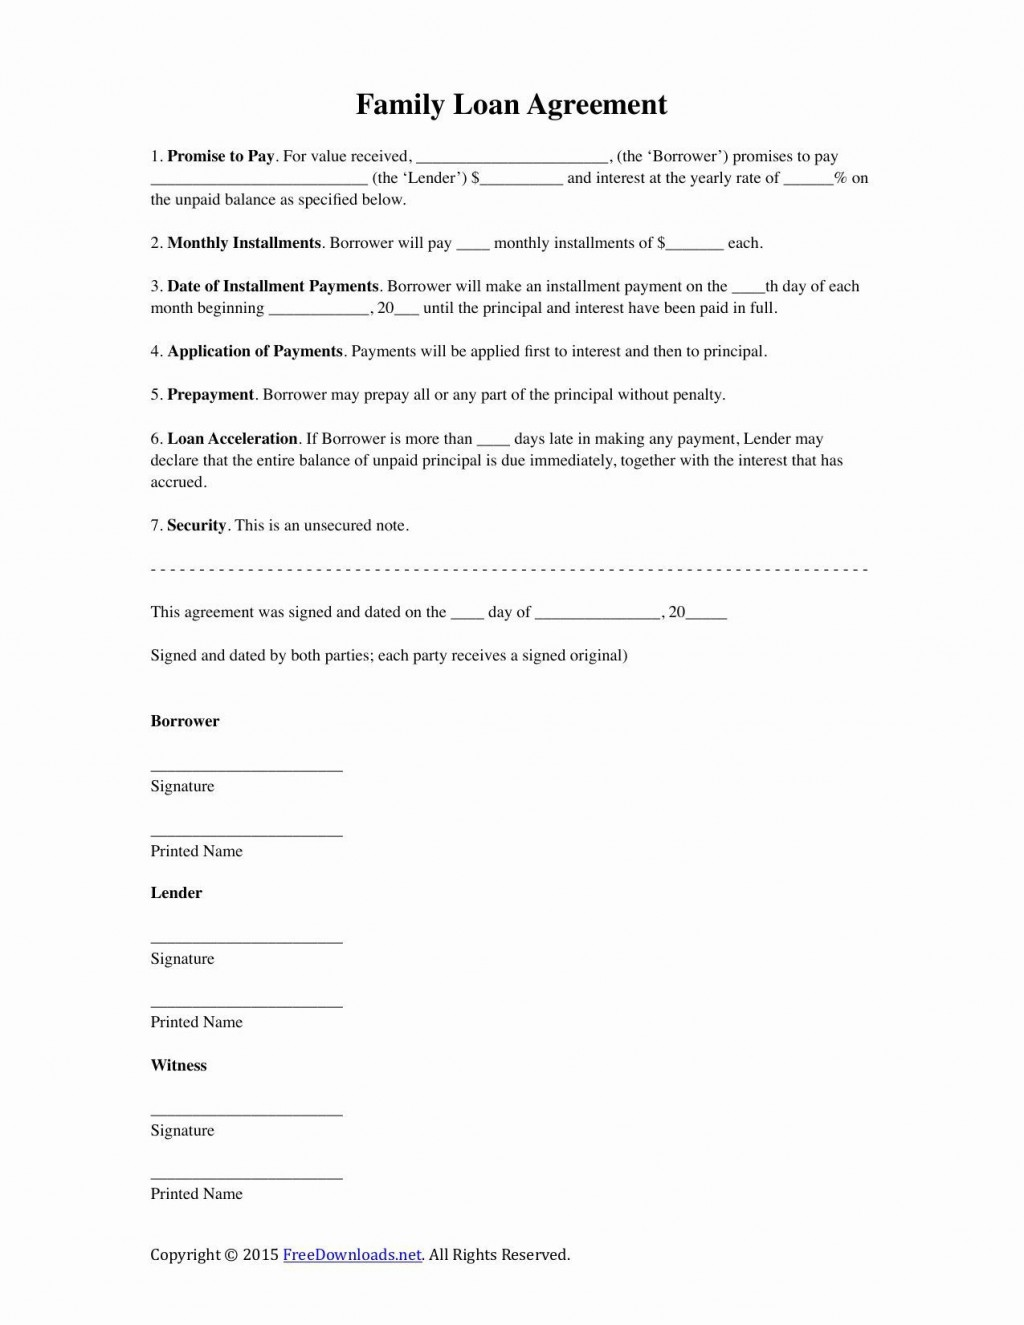 000 Frightening Family Loan Agreement Template Uk Free Picture Large